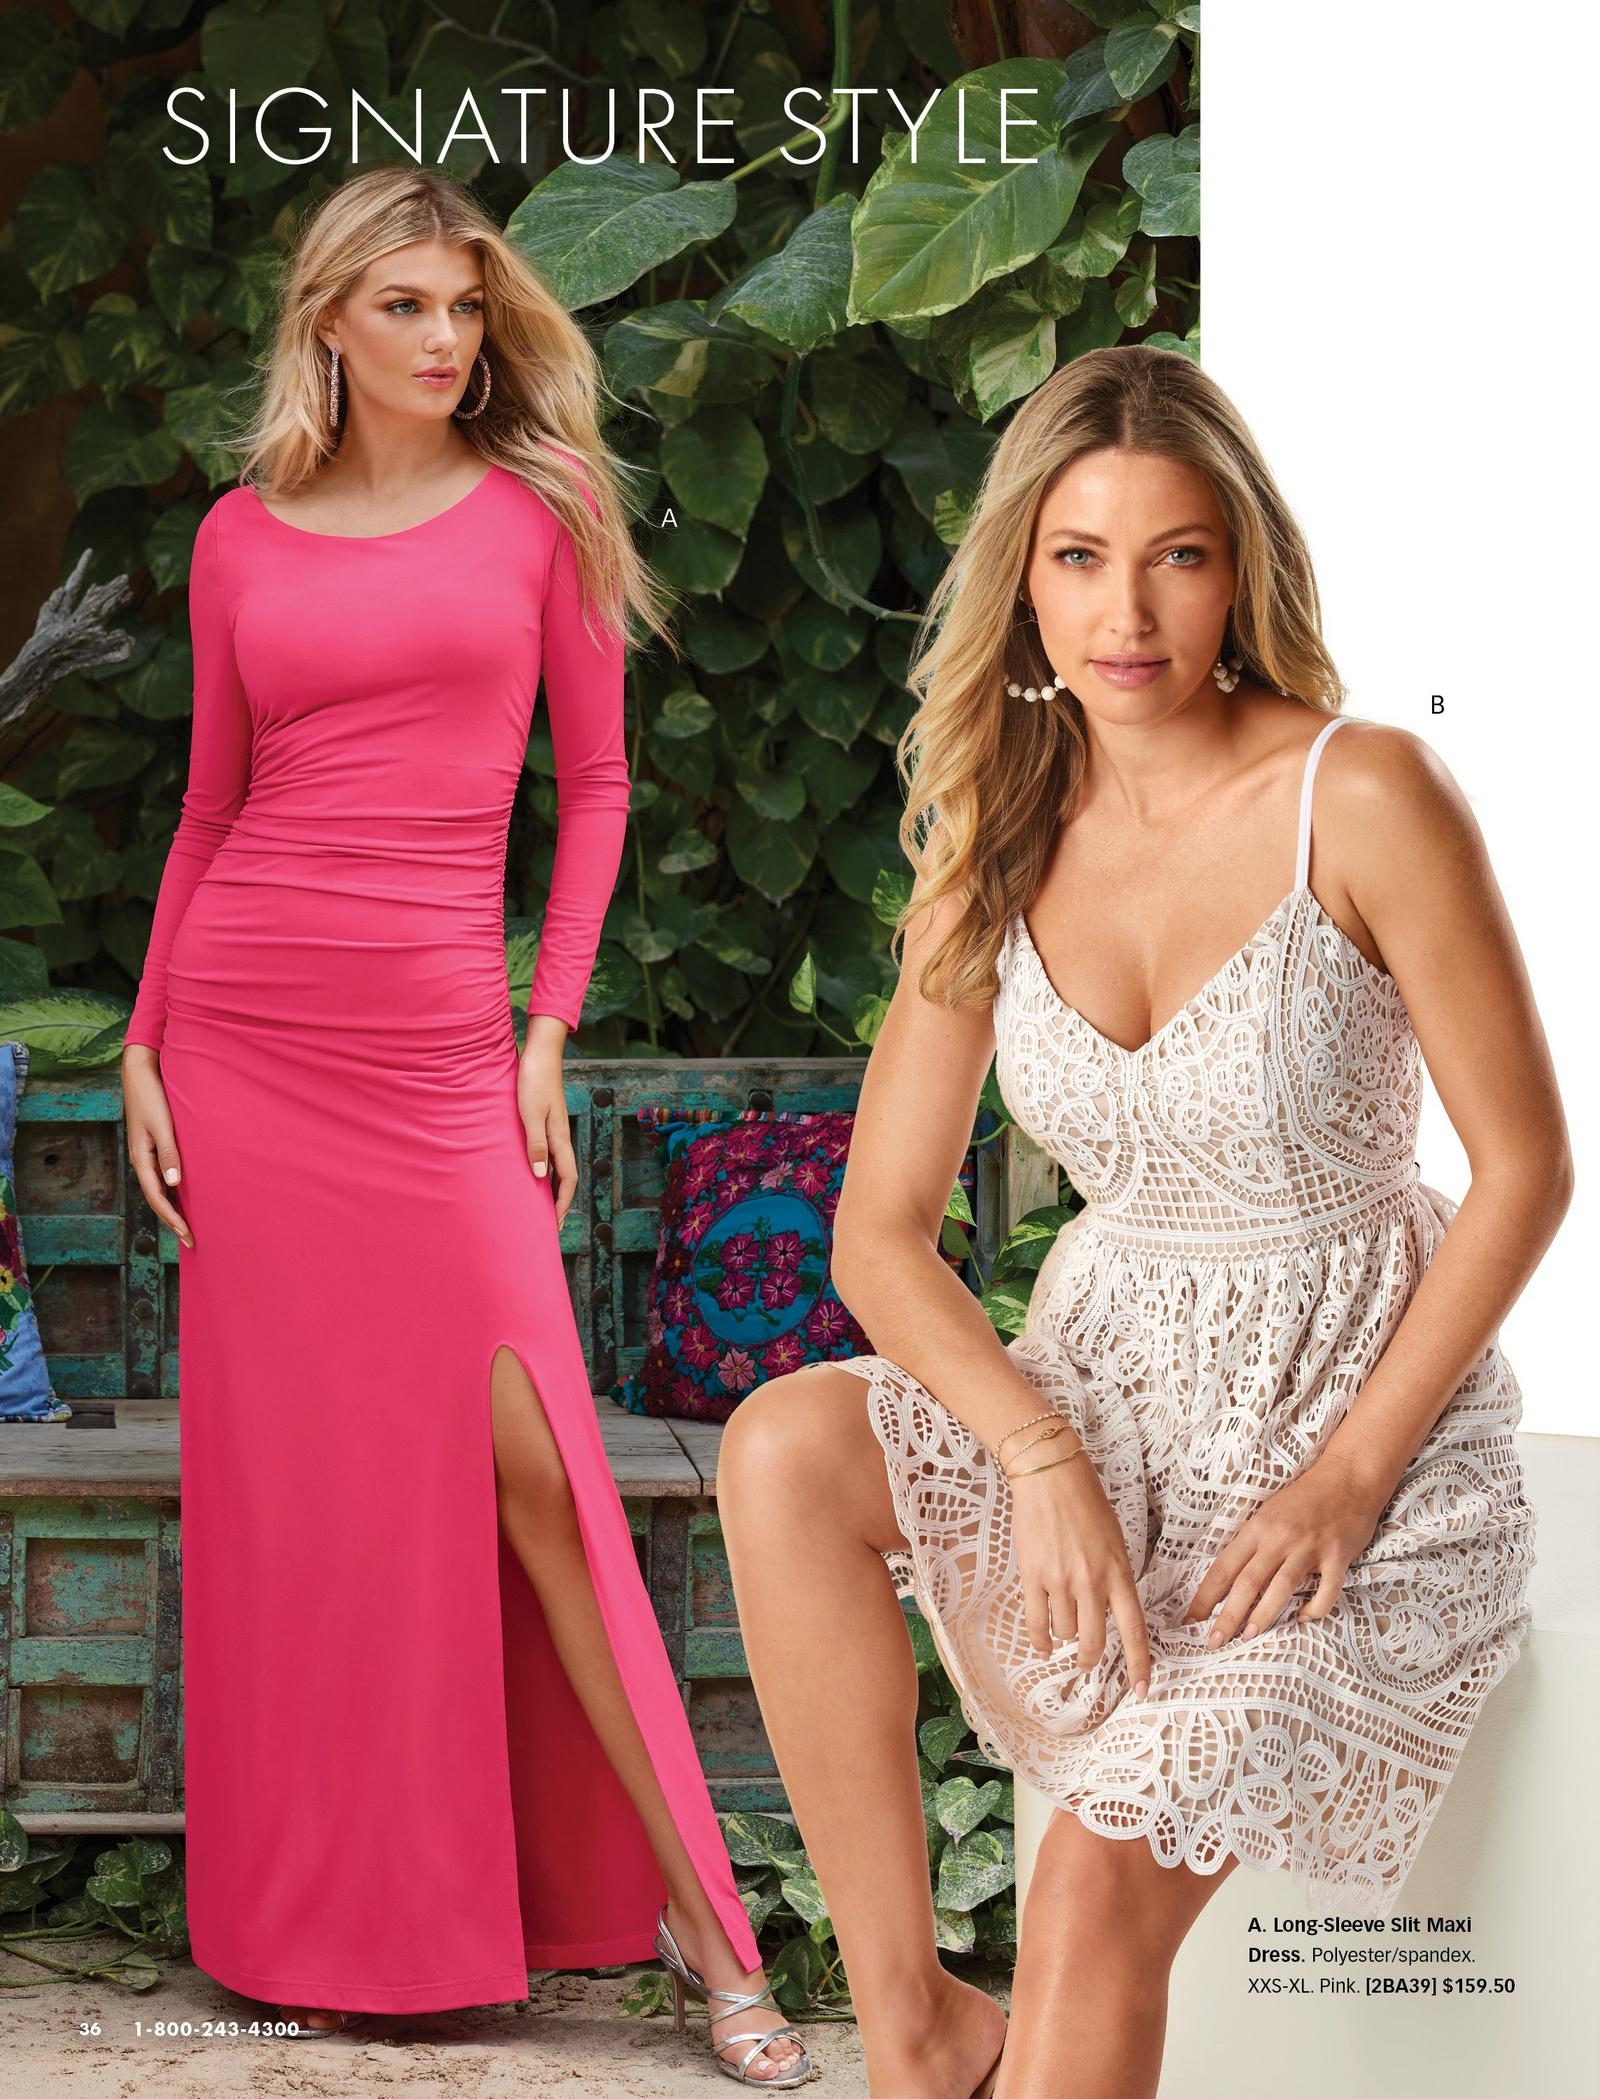 left model wearing a pink long-sleeve side-slit ruched maxi dress. right model wearing a white lace fit and flare sleeveless dress.